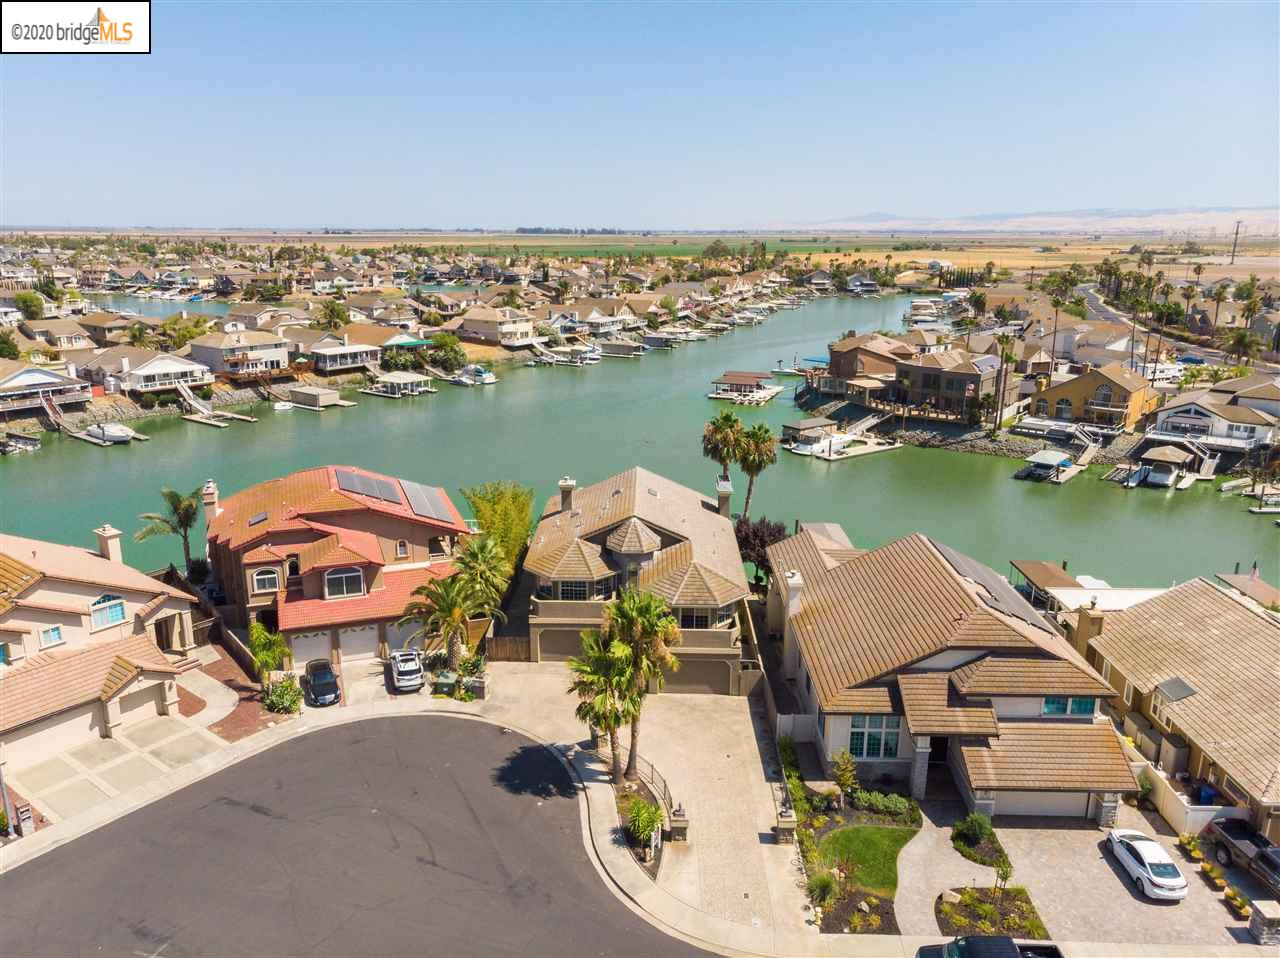 4020 CAPSTAN PLACE, DISCOVERY BAY, CA 94505